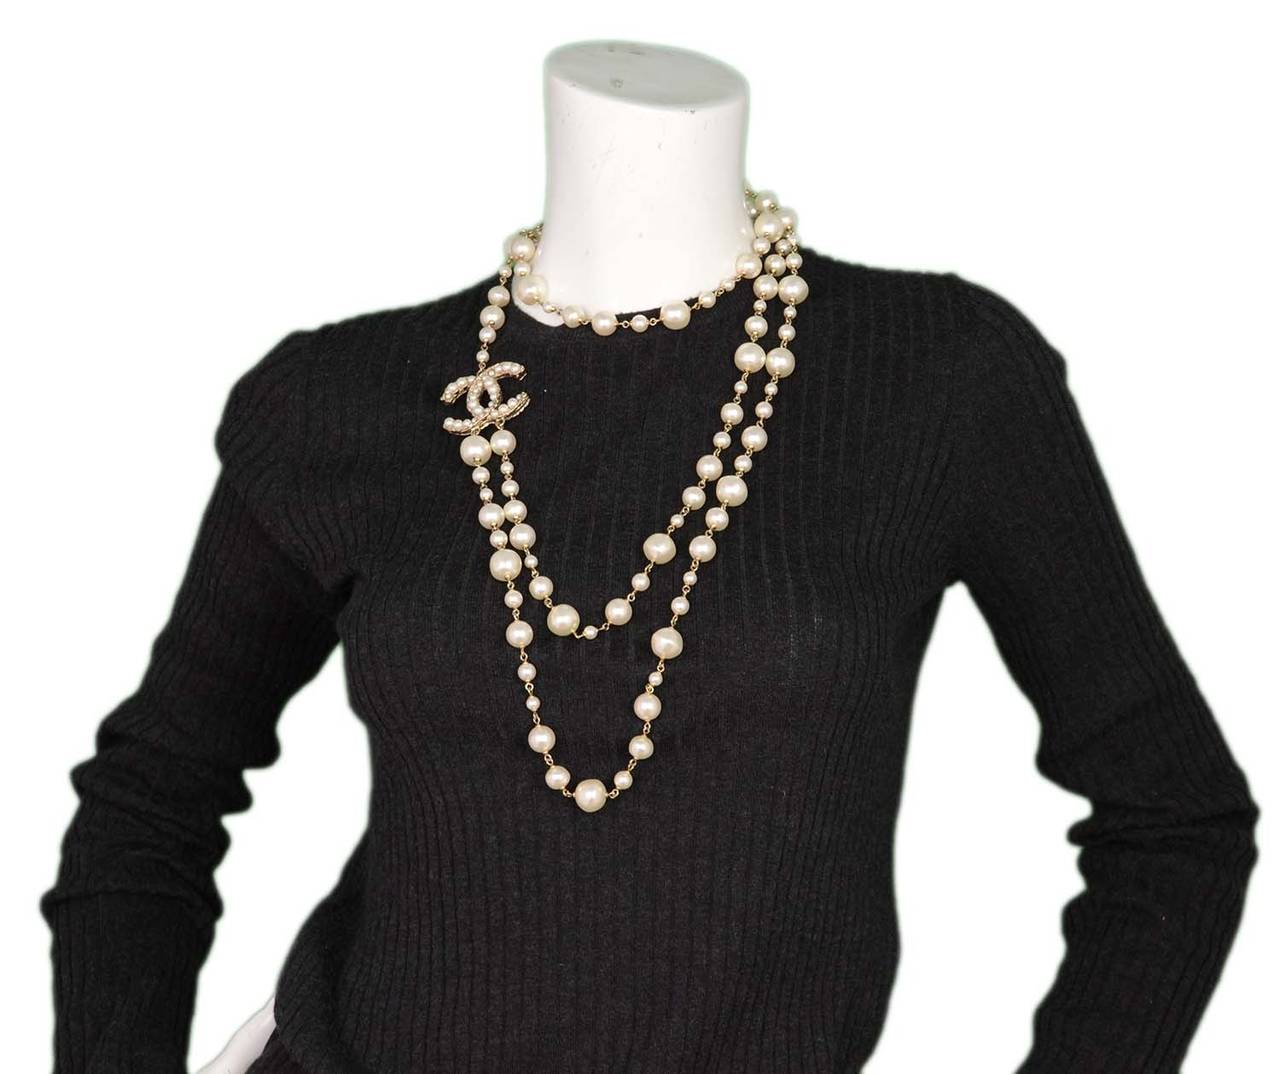 CHANEL 2011 X-Long Double Strand Faux Pearl Necklace w/ CC 8